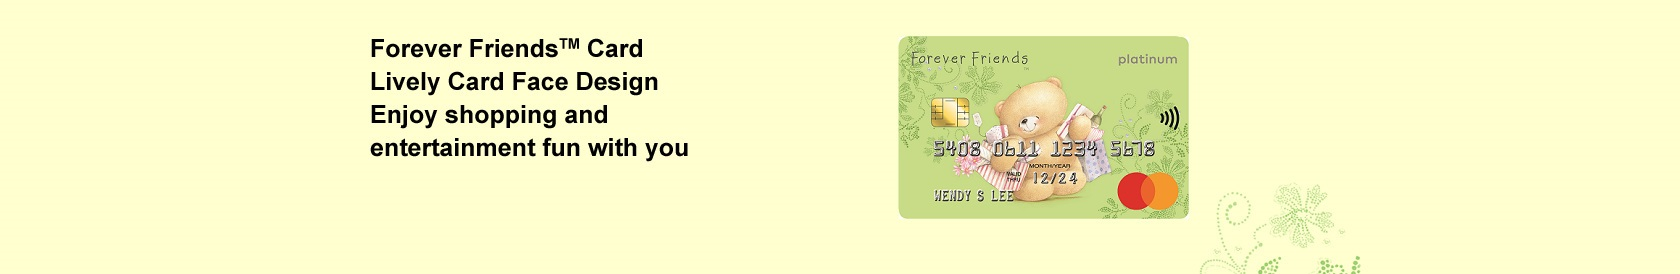 Hang Seng Card Products - Forever Friends Card